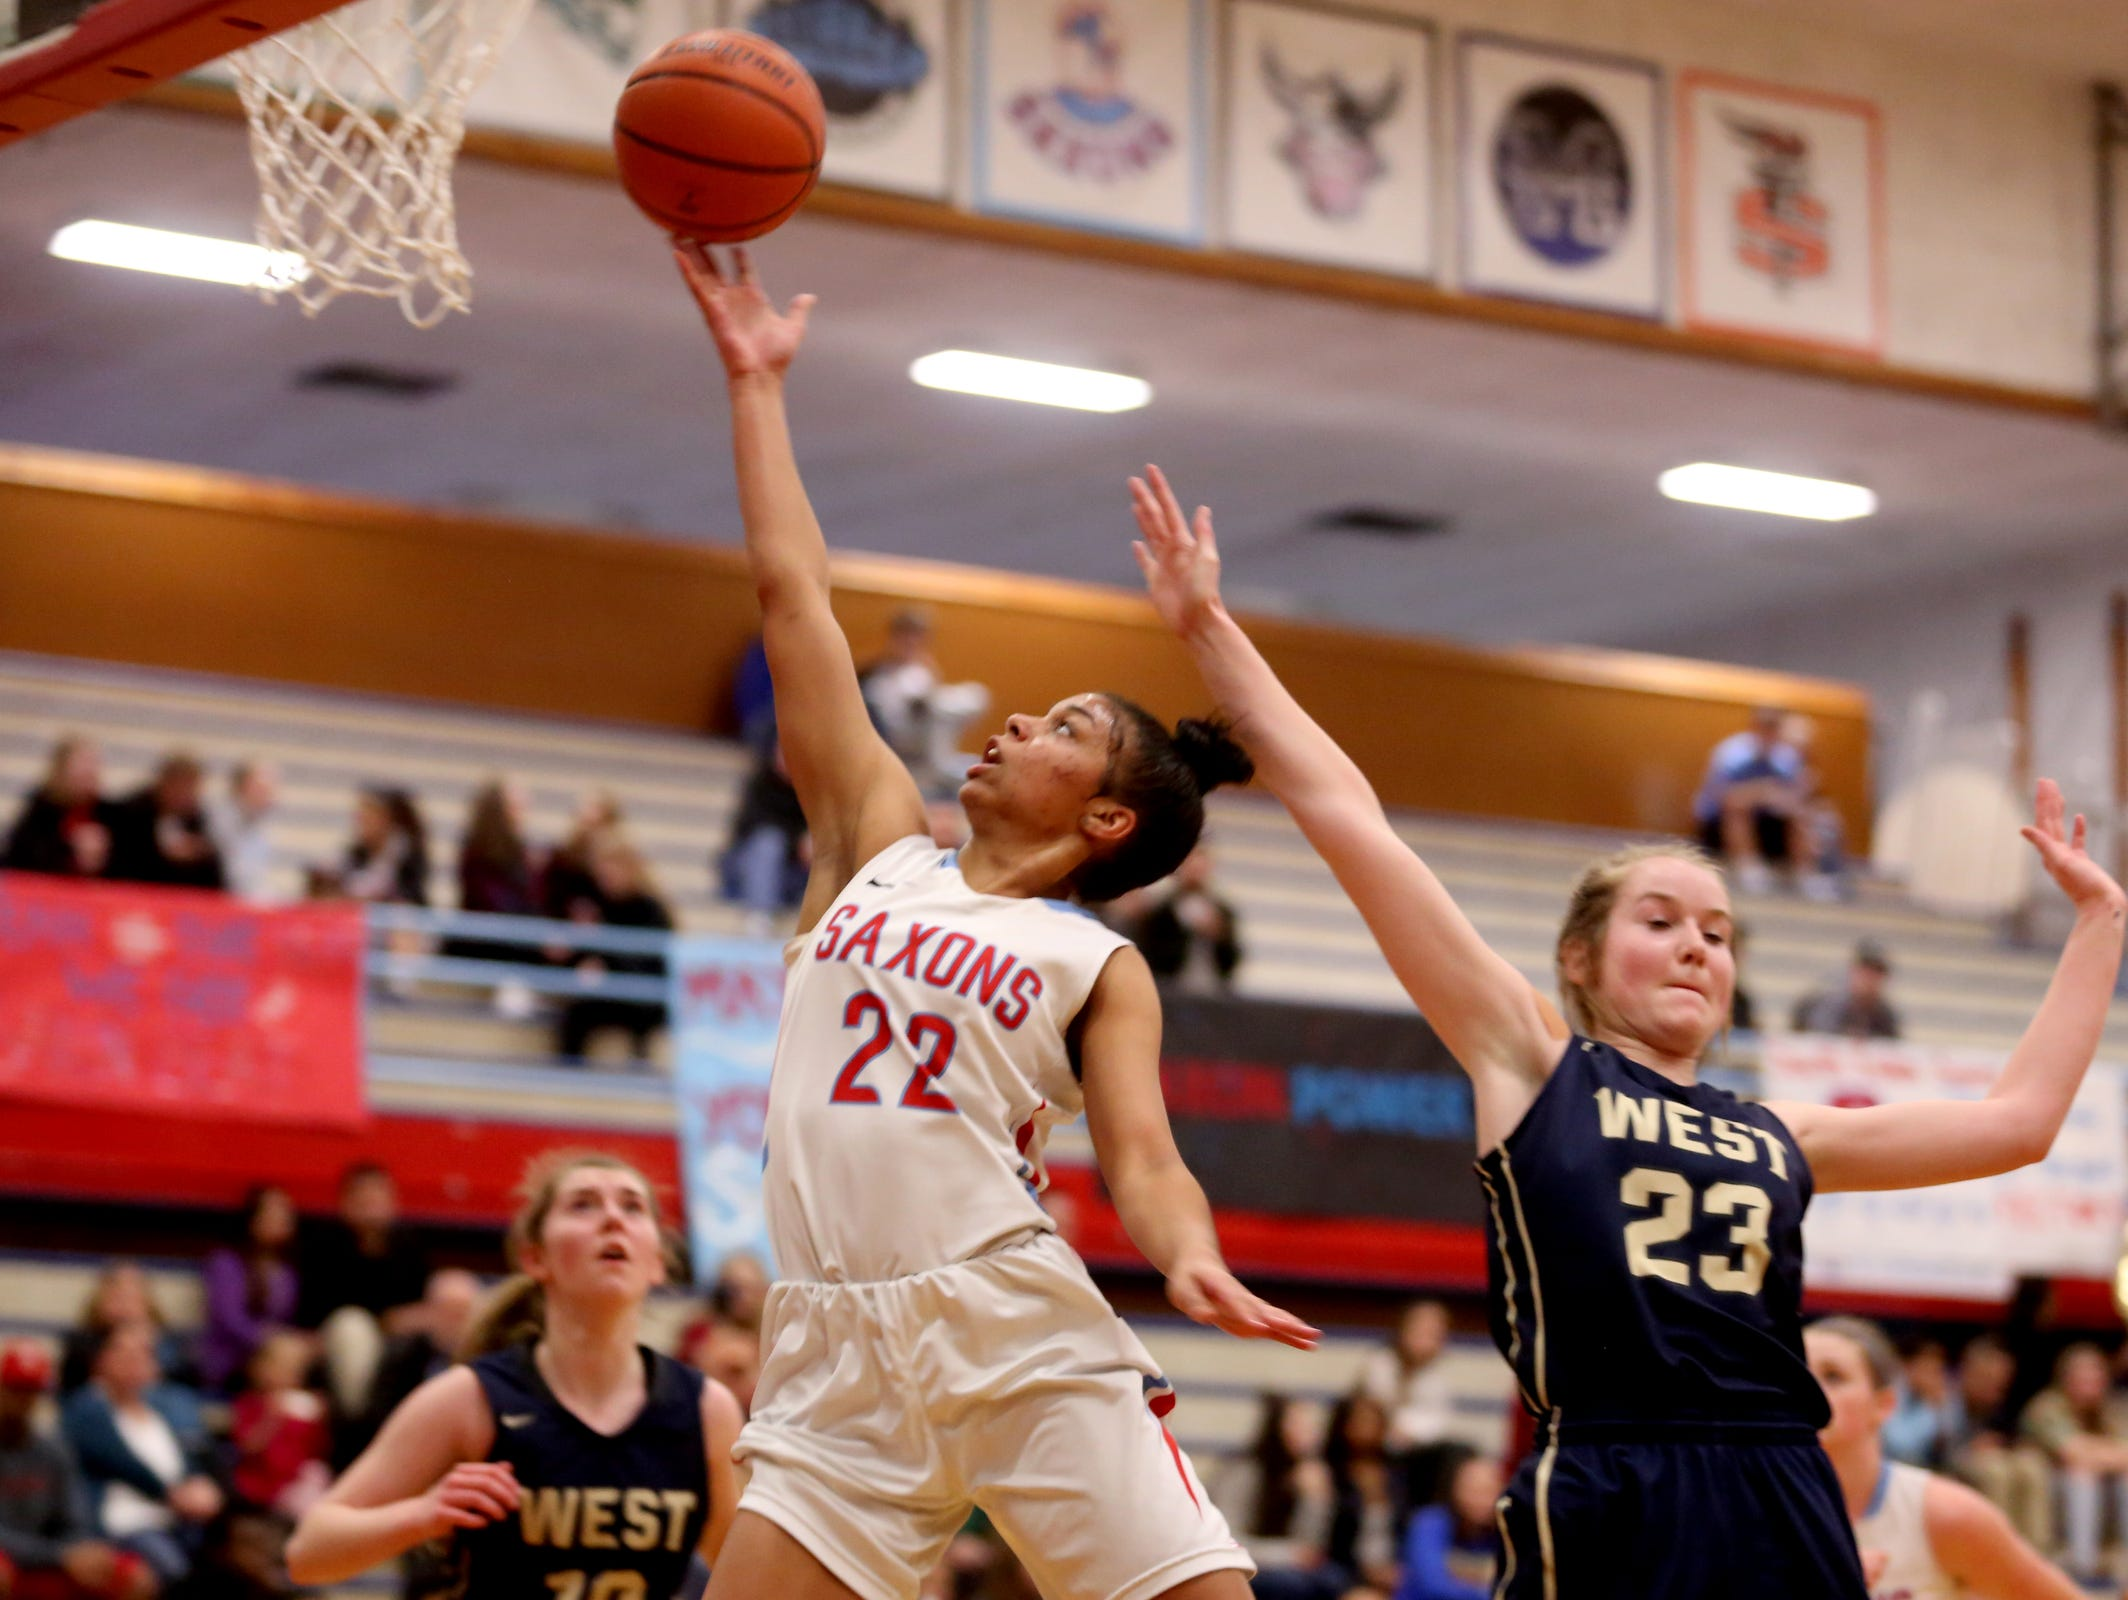 "South Salem's Evina Westbrook (22), who is rated as the top high school guard in the nation by ESPN, said she has a connection on the court with Dani Haley ""that just clicks."""